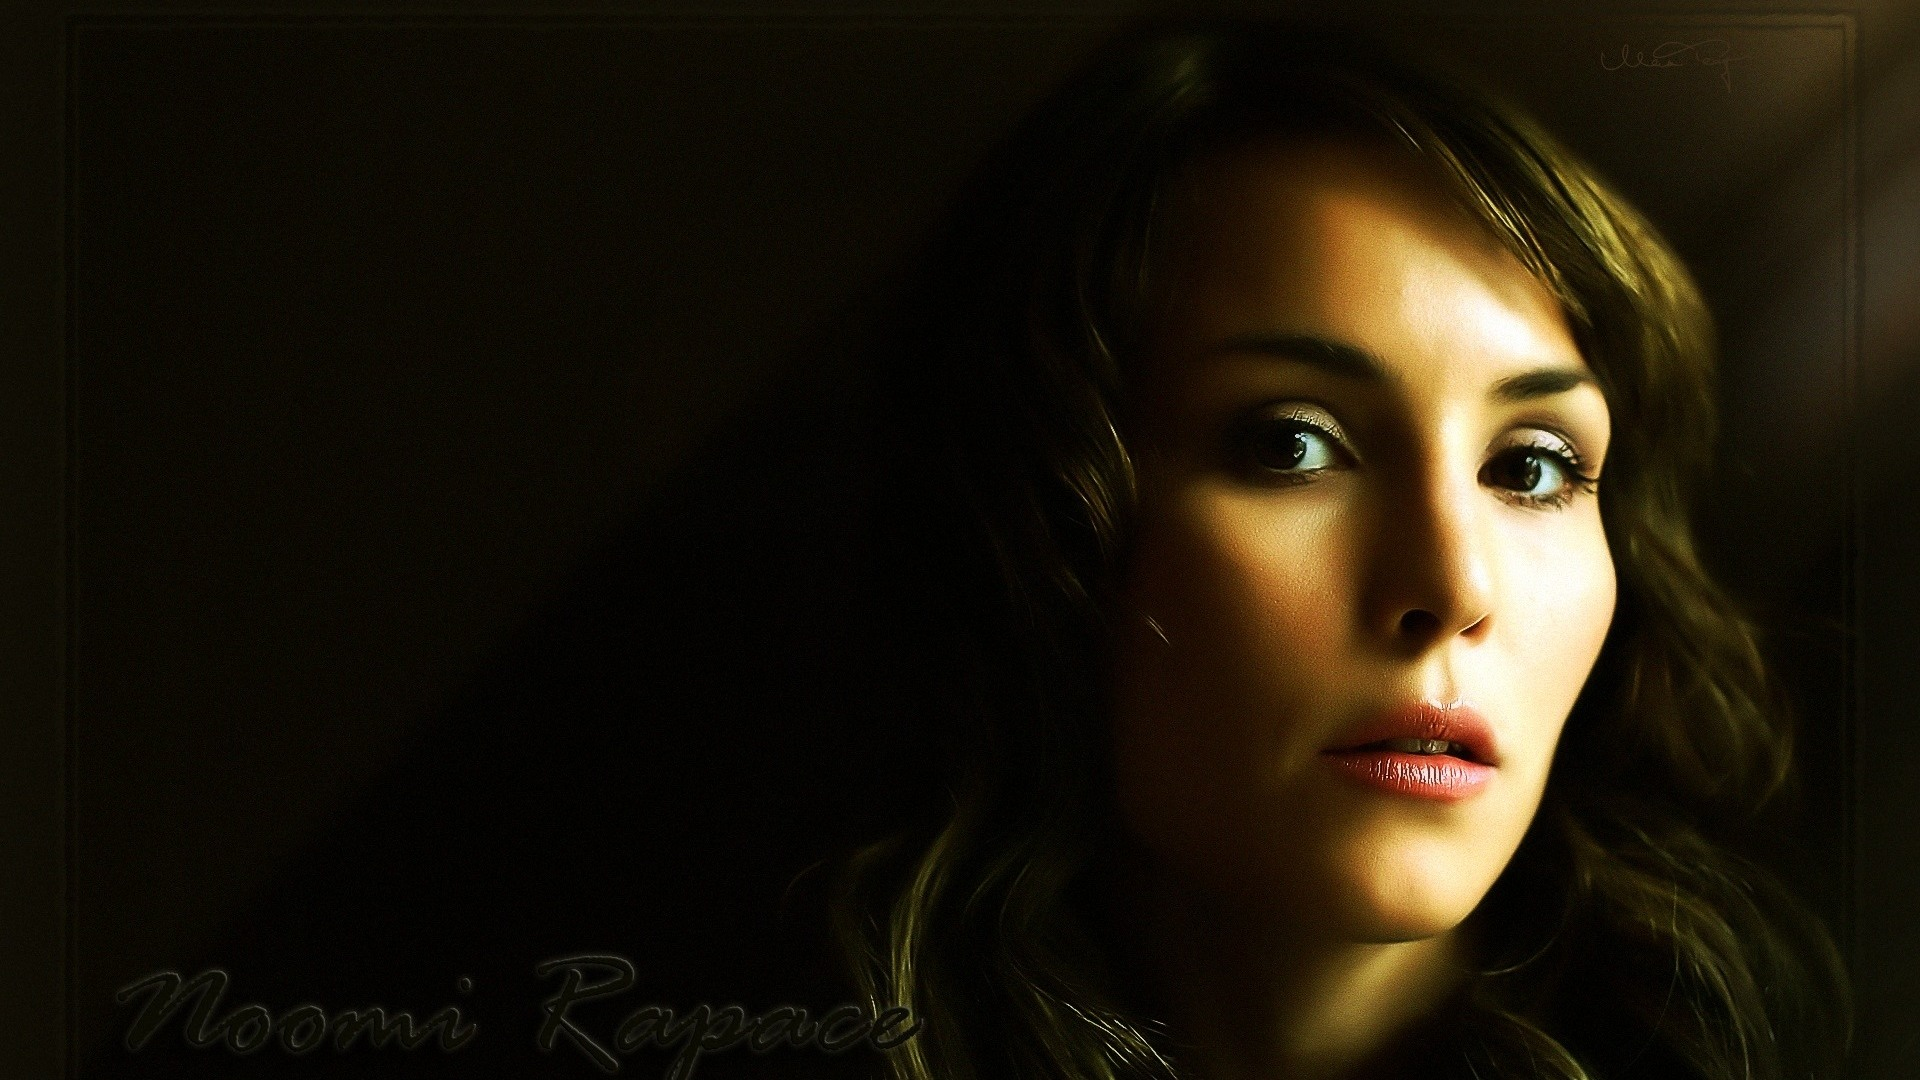 1920x1080 - Noomi Rapace Wallpapers 28